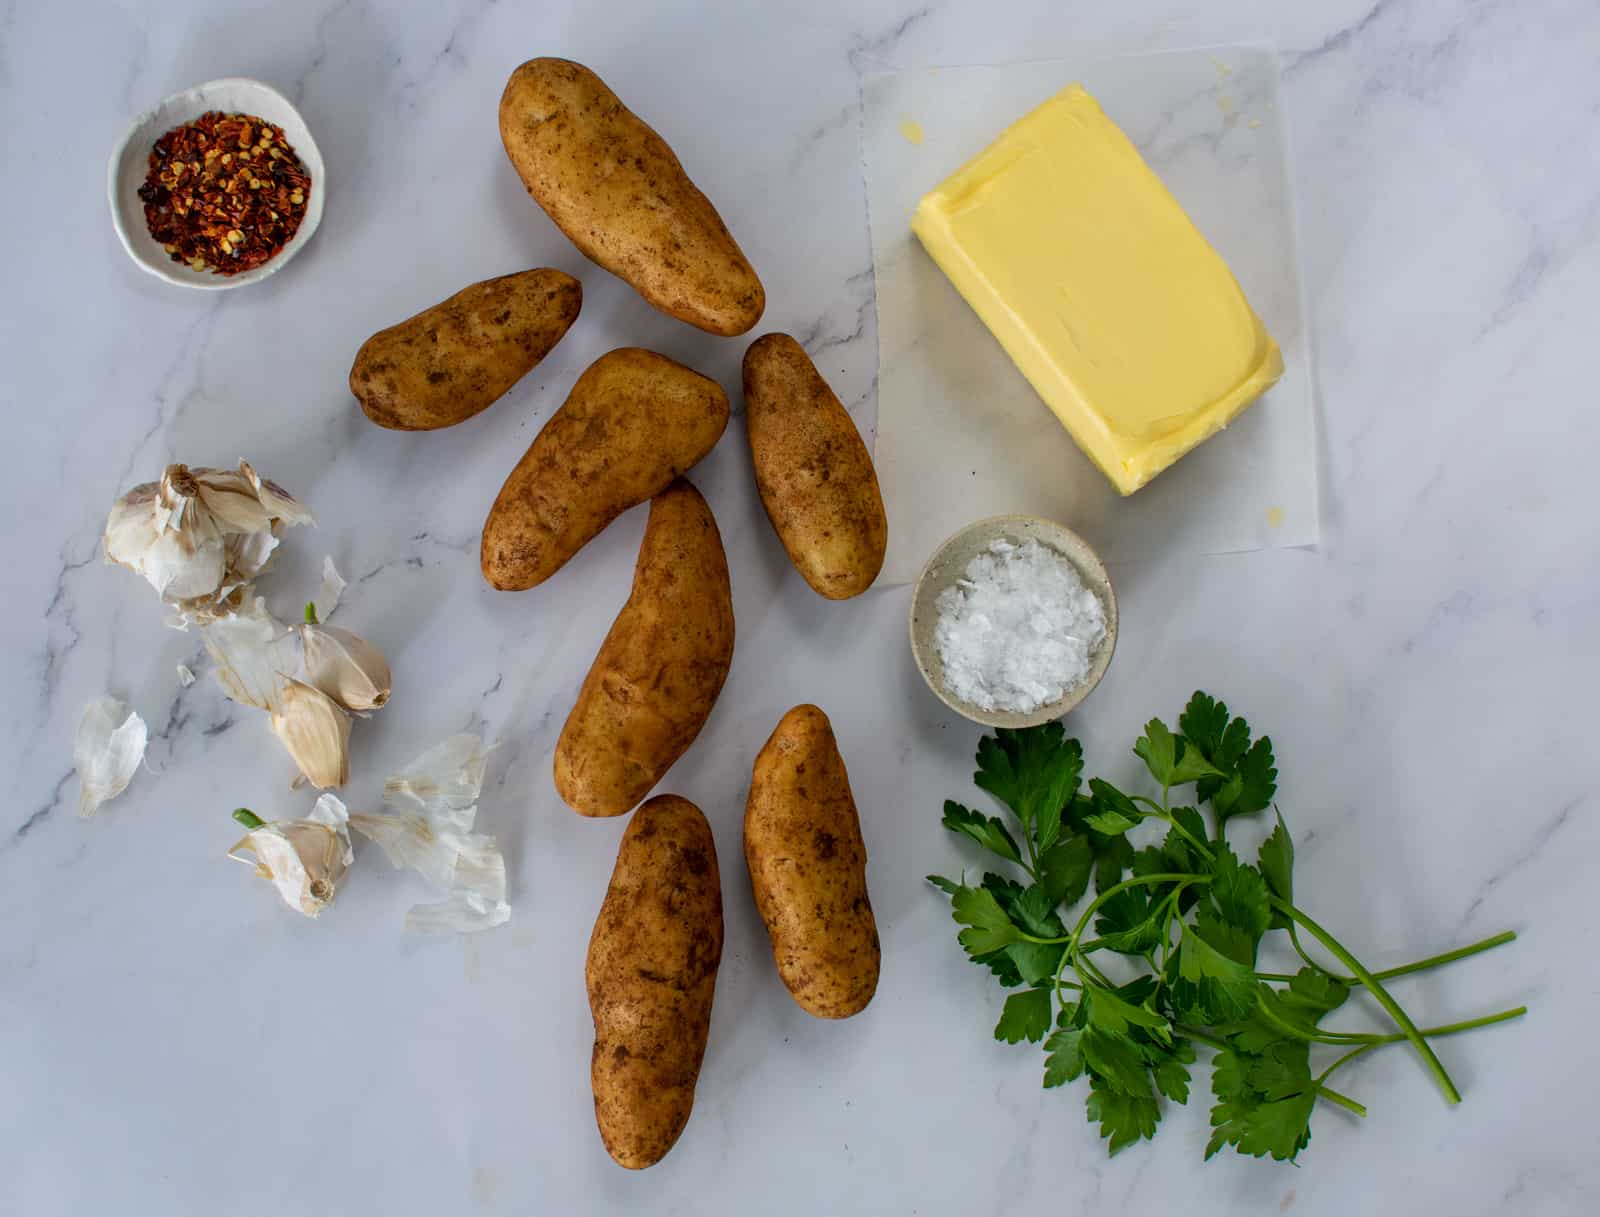 kipfler potatoes, butter, garlic and herbs on kitchen counter top